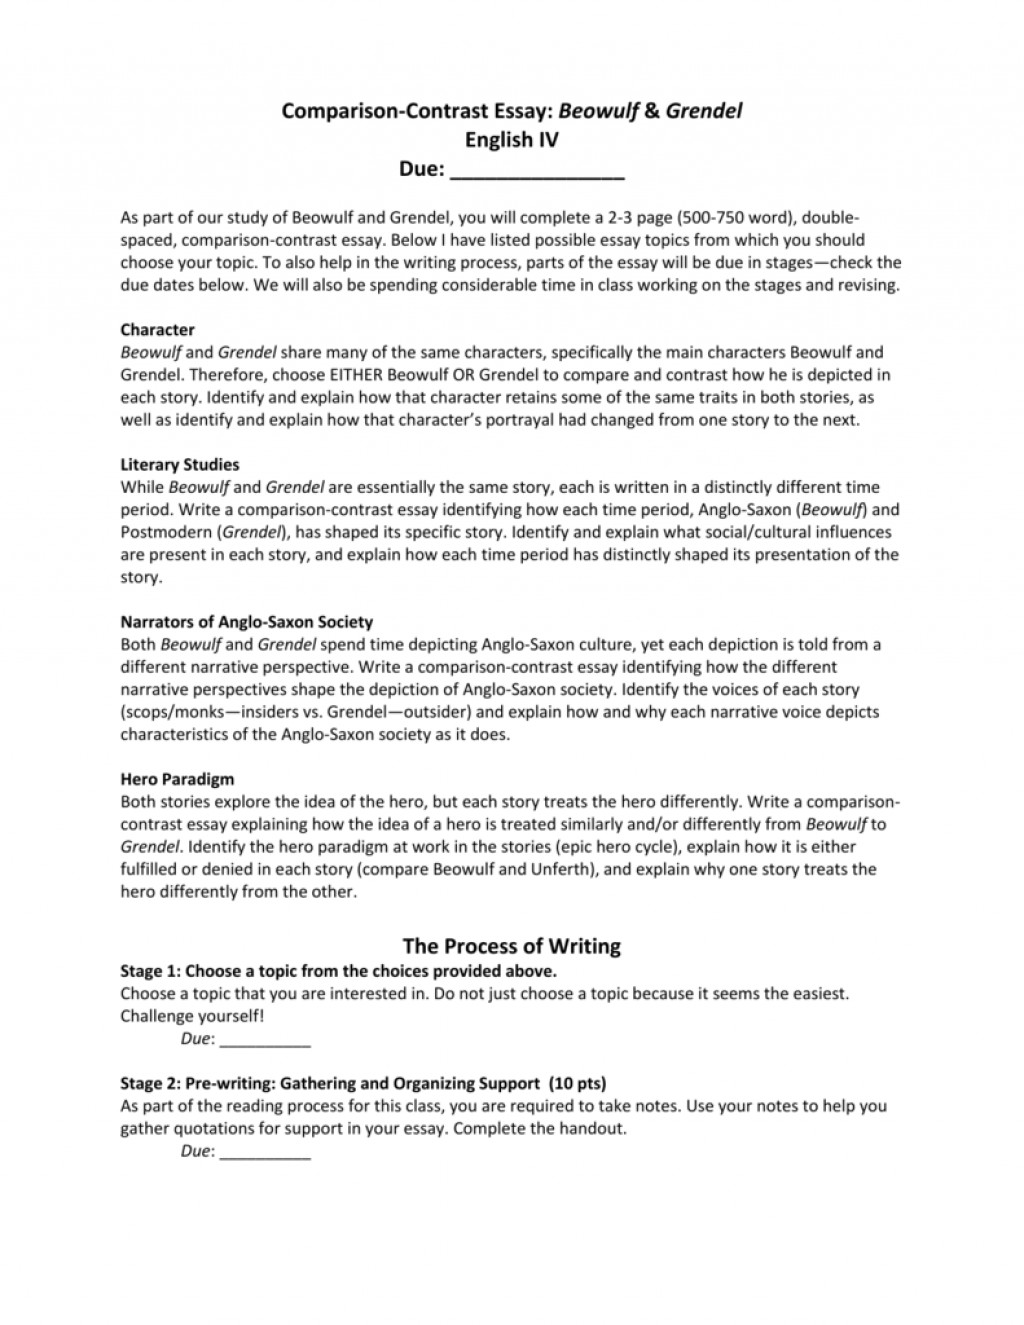 015 008061732 1 Essay Example Comparison And Awful Contrast Topics List Thesis Statement Compare Means Large